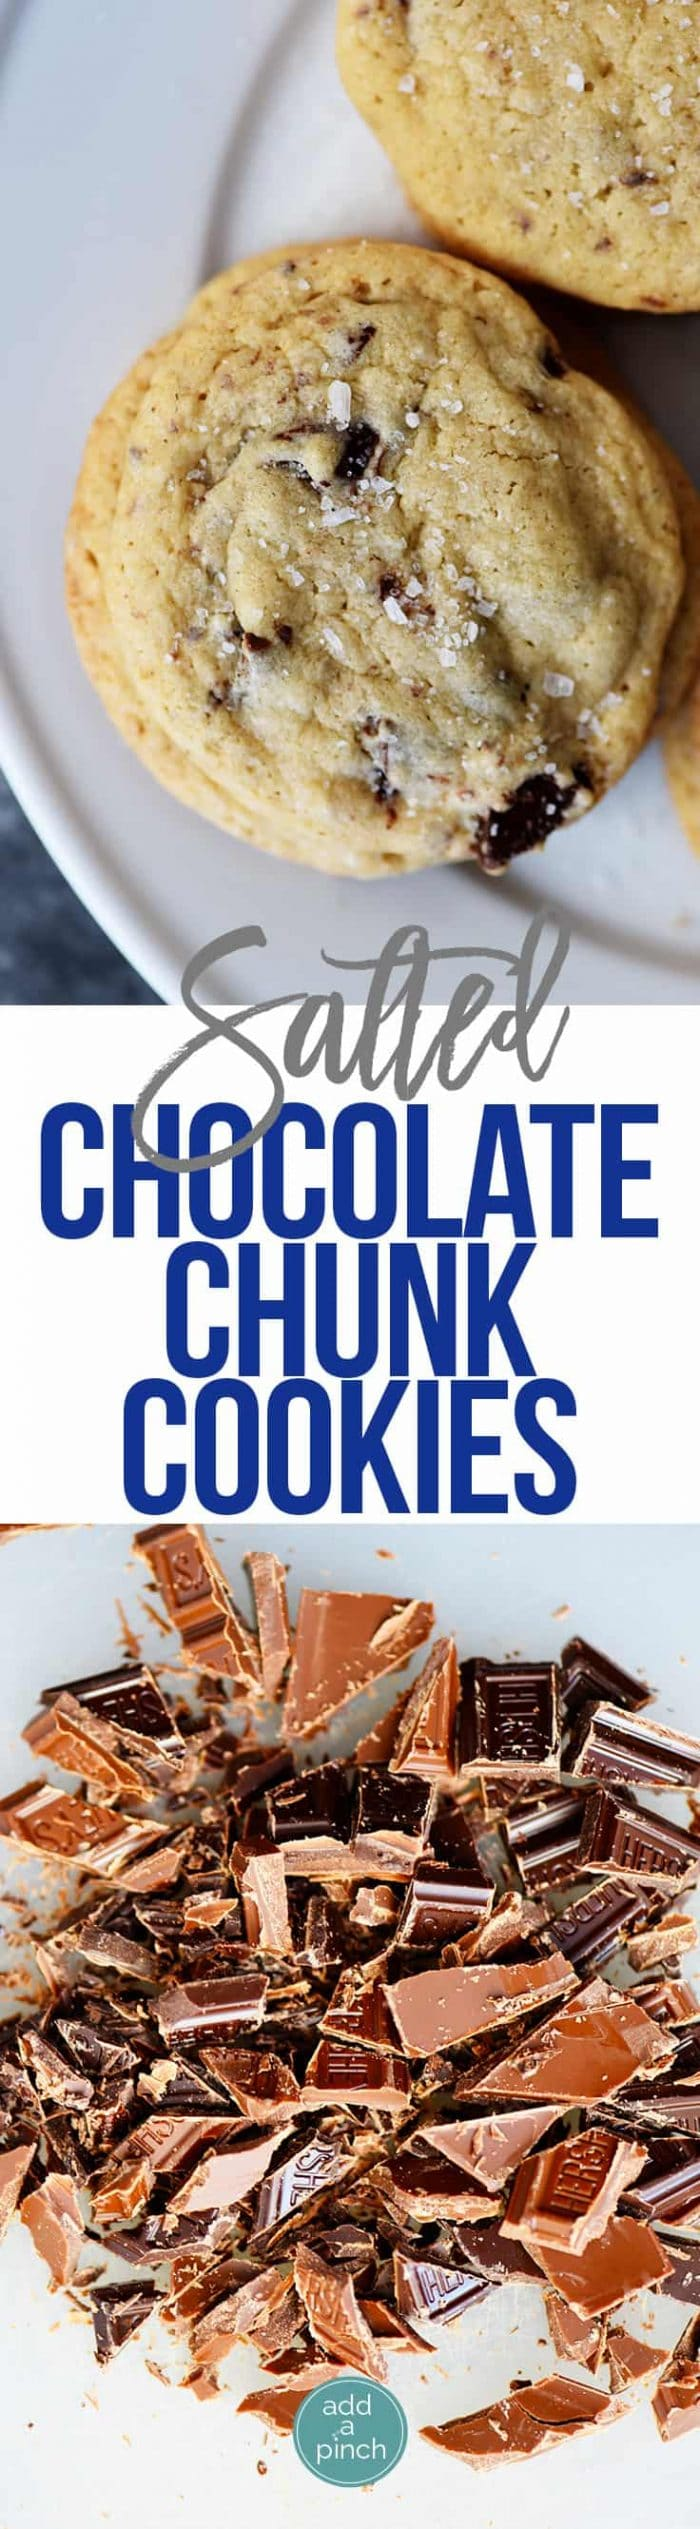 Salted Chocolate Chunk Cookies Recipe - An update of the classic chocolate chip cookie with a blend of dark and milk chocolate chunks and a sprinkle of sea salt, these are now a favorite chocolate chip cookie recipe! // addapinch.com